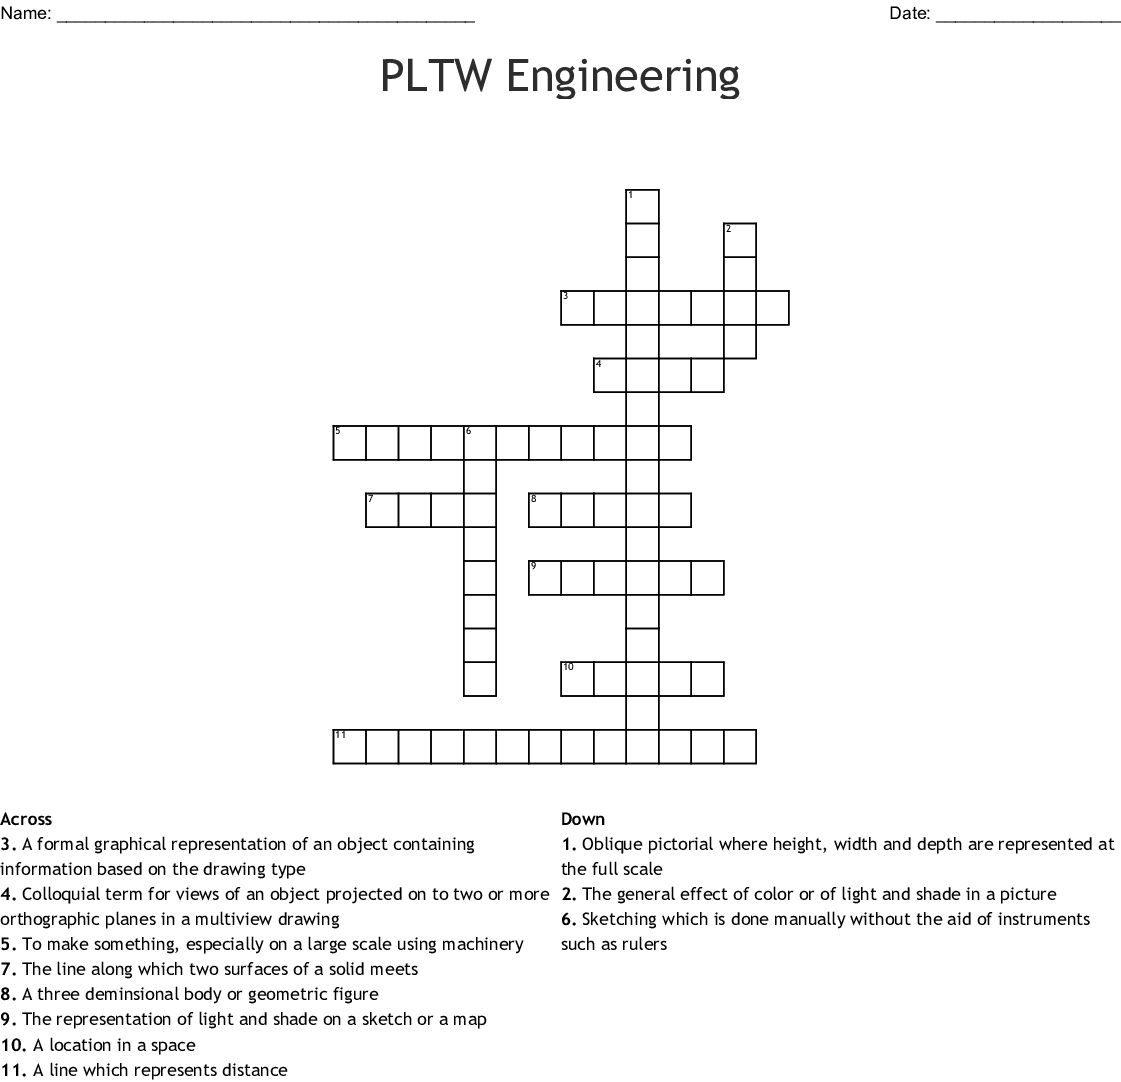 Pltw Engineering Crossword